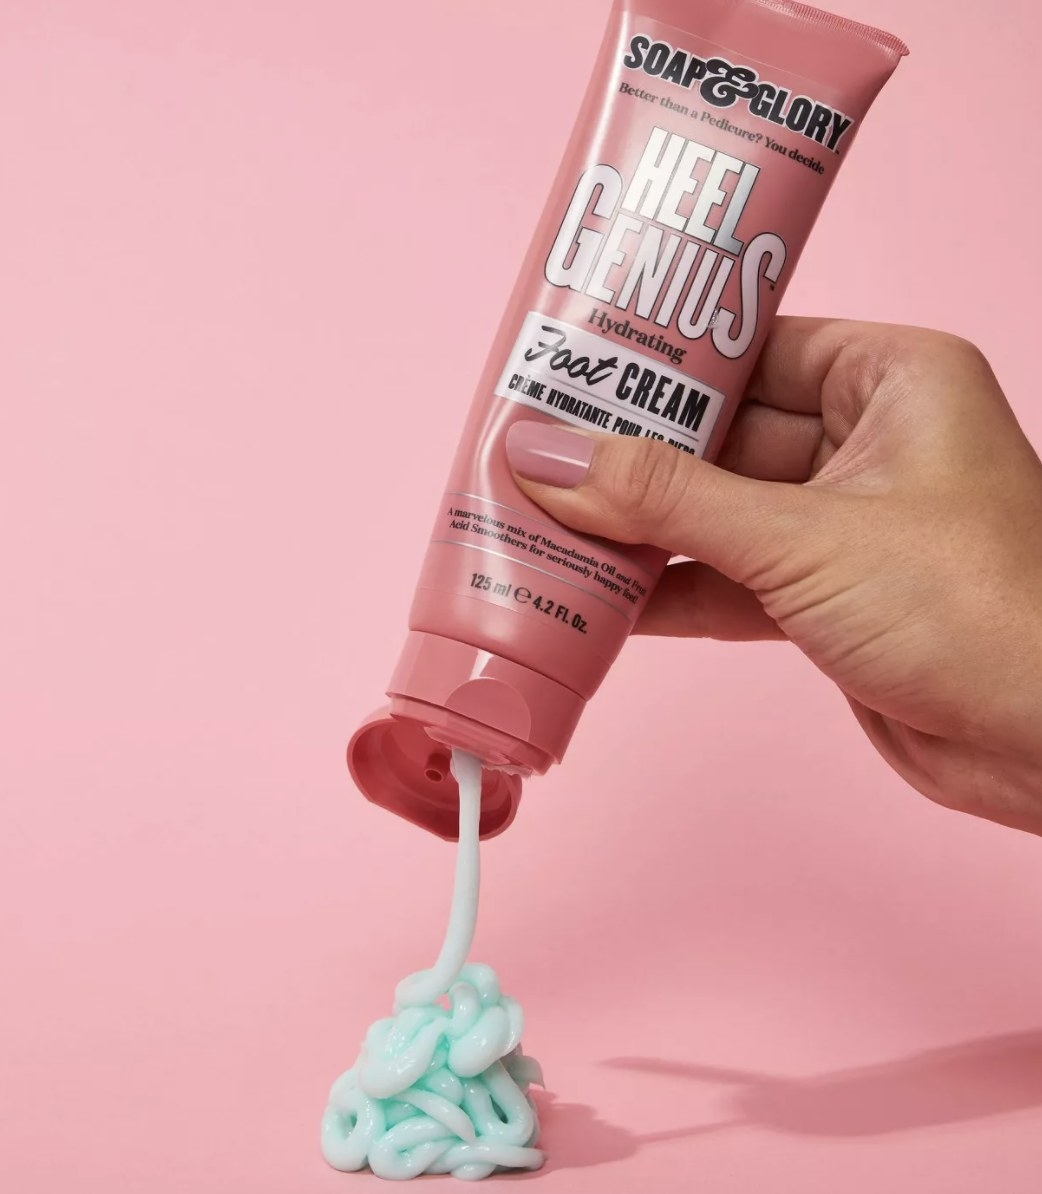 a person squeezing the cream out of its pink tube